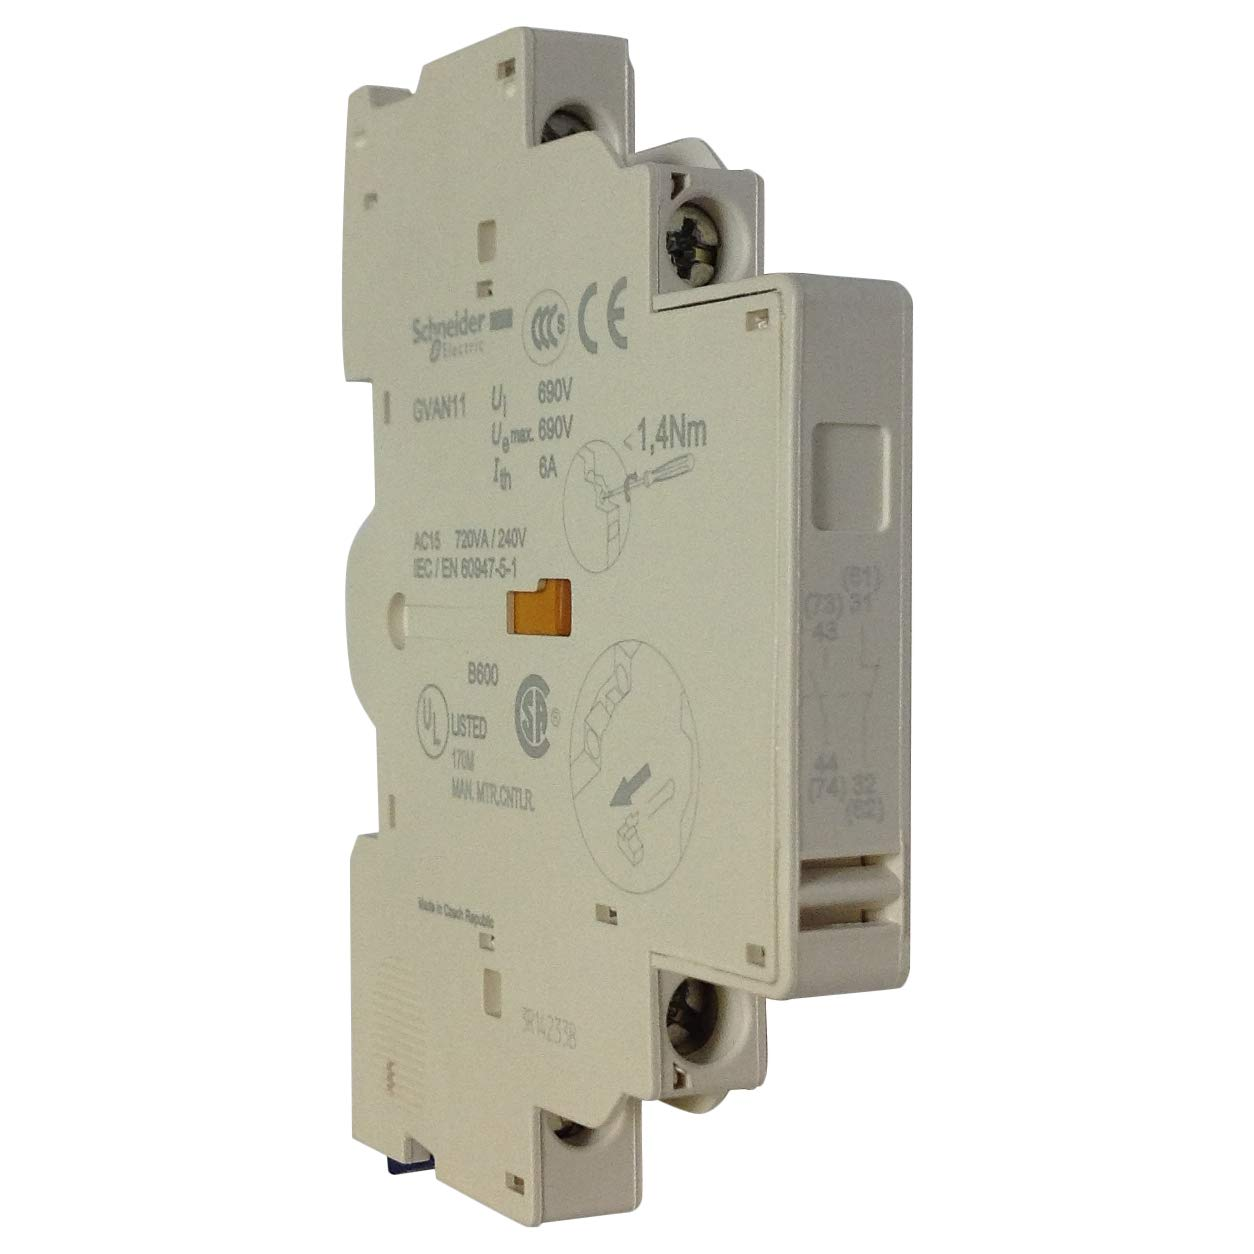 Schneider AUX CONTACT BLOCK 1NO+1NC SIDE MOUNT GVAN11 - SCHNEIDER ELECTRIC GVAN11